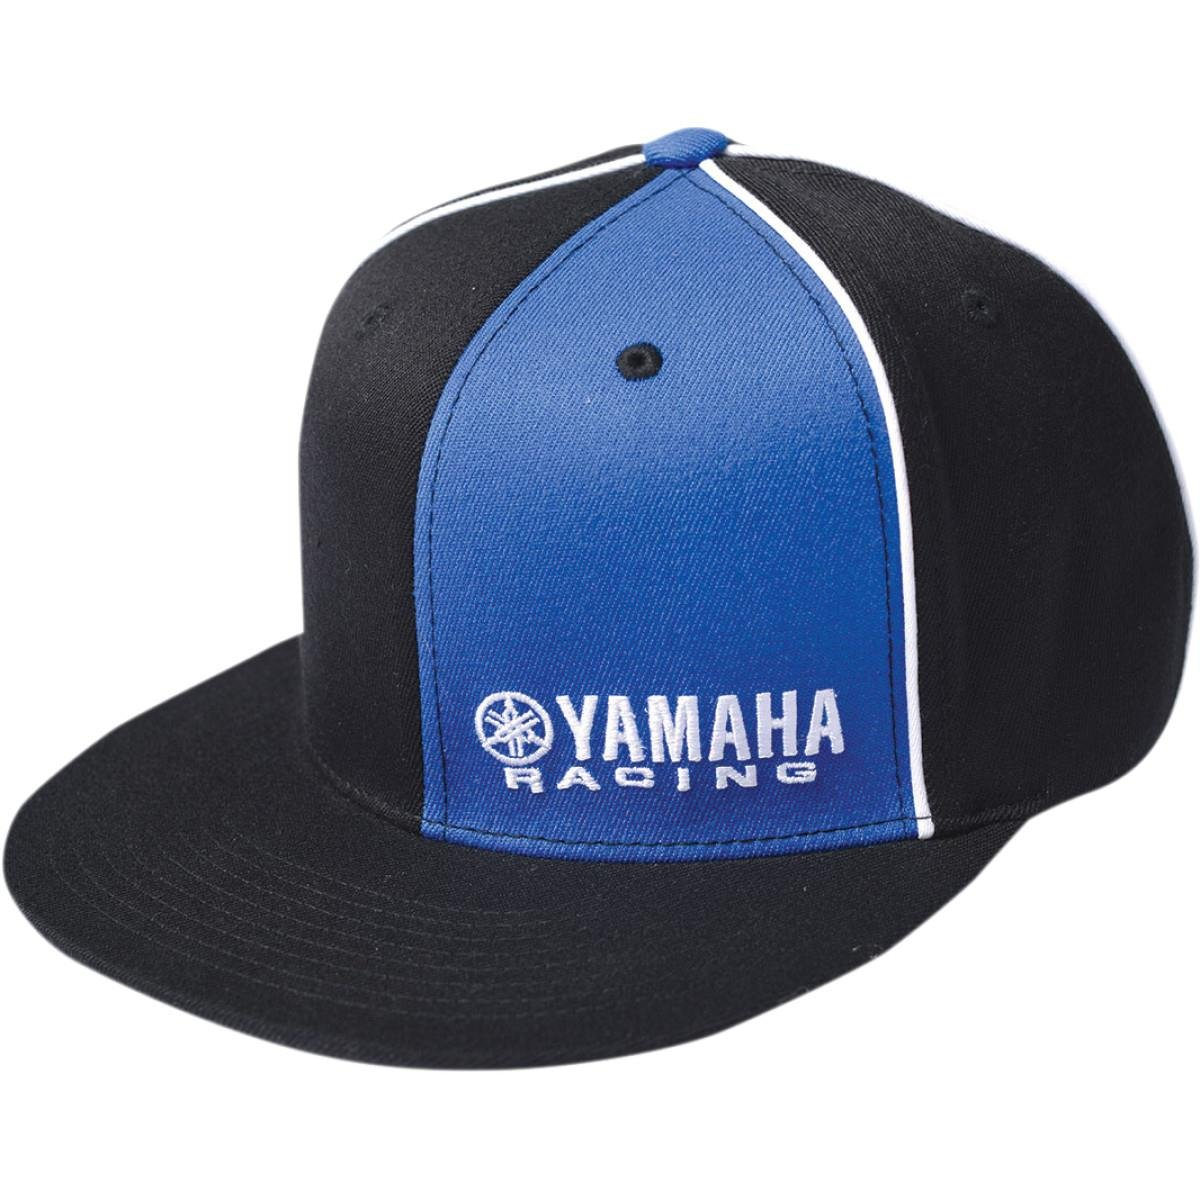 6faea532bf5 Amazon.com  Factory Effex Yamaha Racing Flexfit Hat (Large X-Large)  (Black Blue)  Automotive